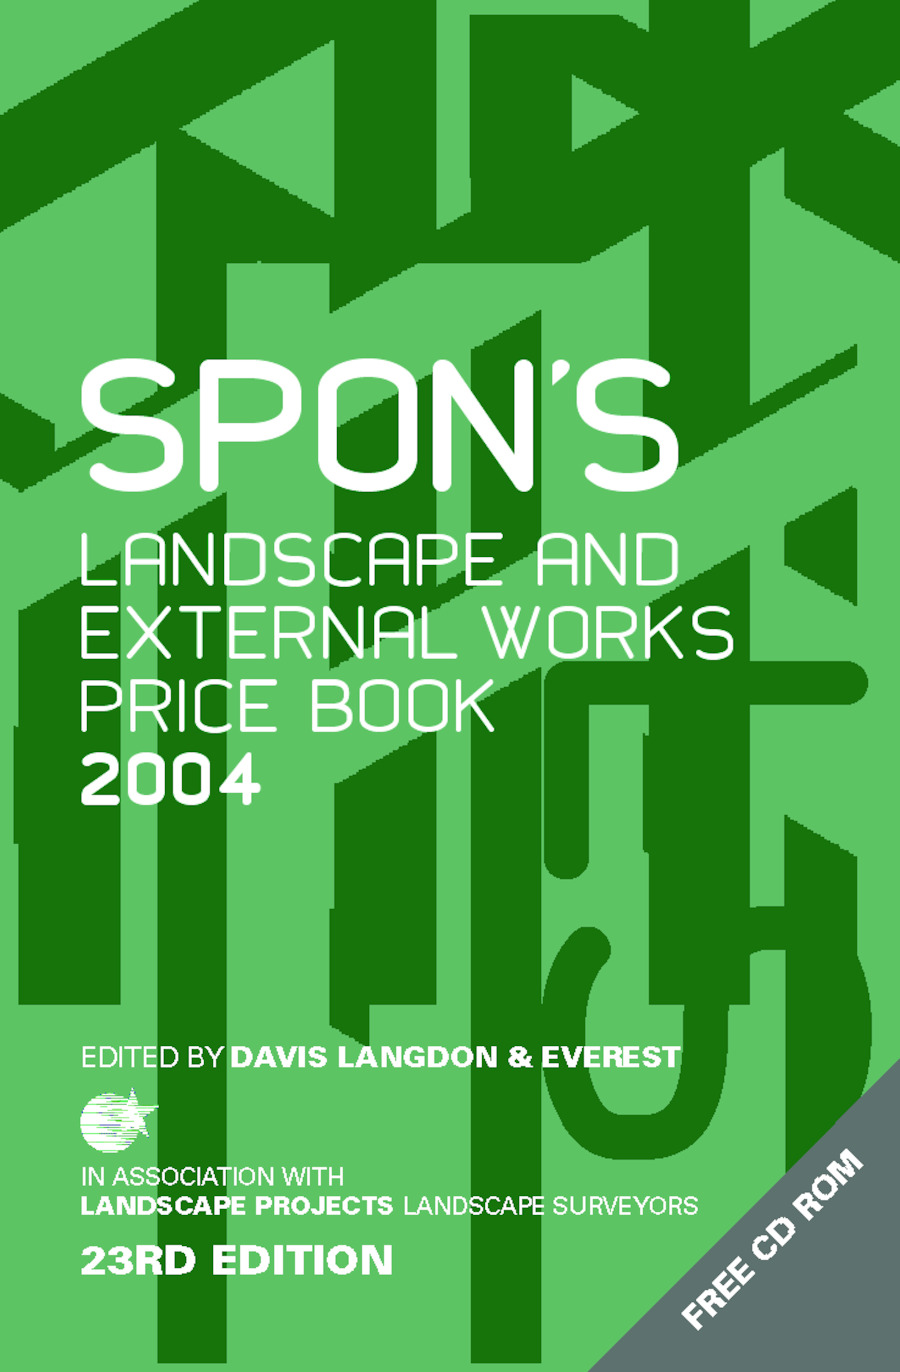 Spon's Landscape and External Works Price Book 2004